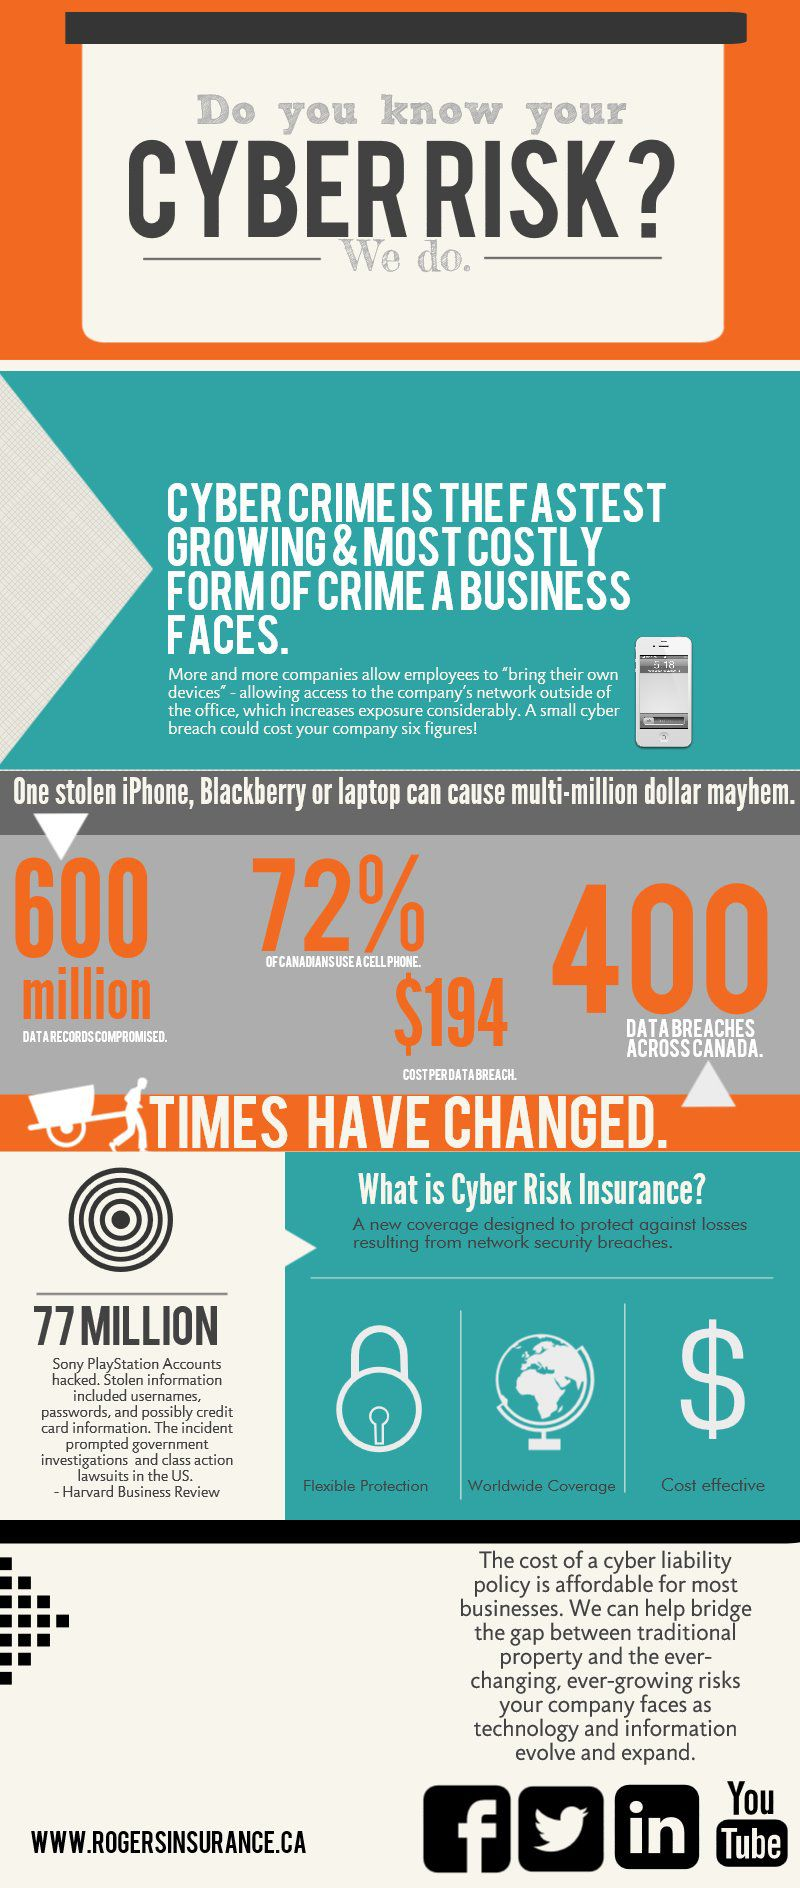 Cyber Crime is the fastest growing & most costly form of